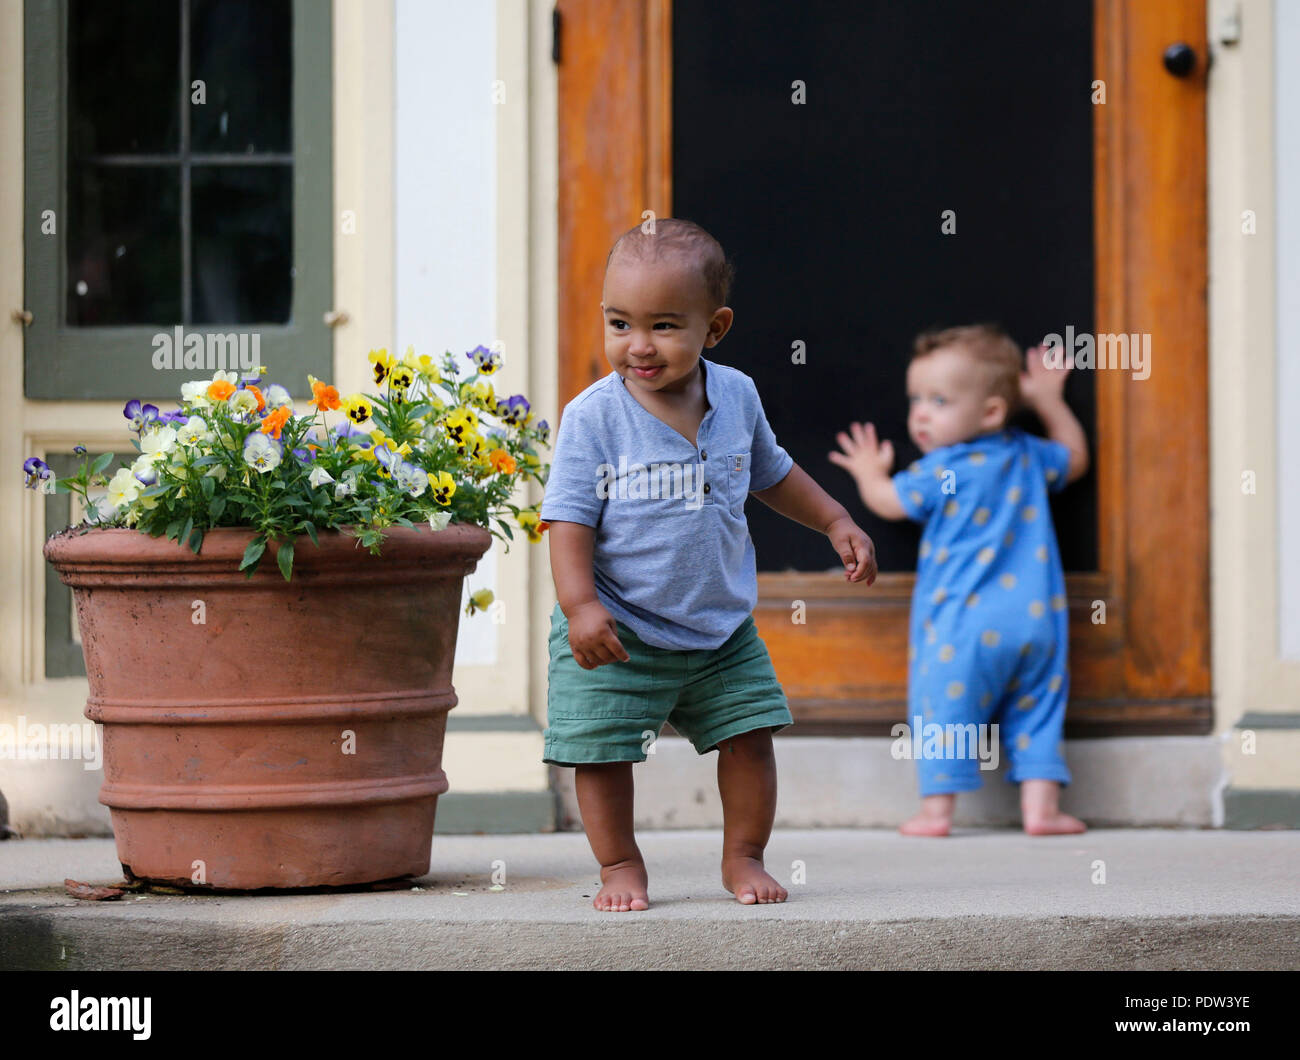 Two Toddler Boys Investigate The Inside Of An Home By Looking